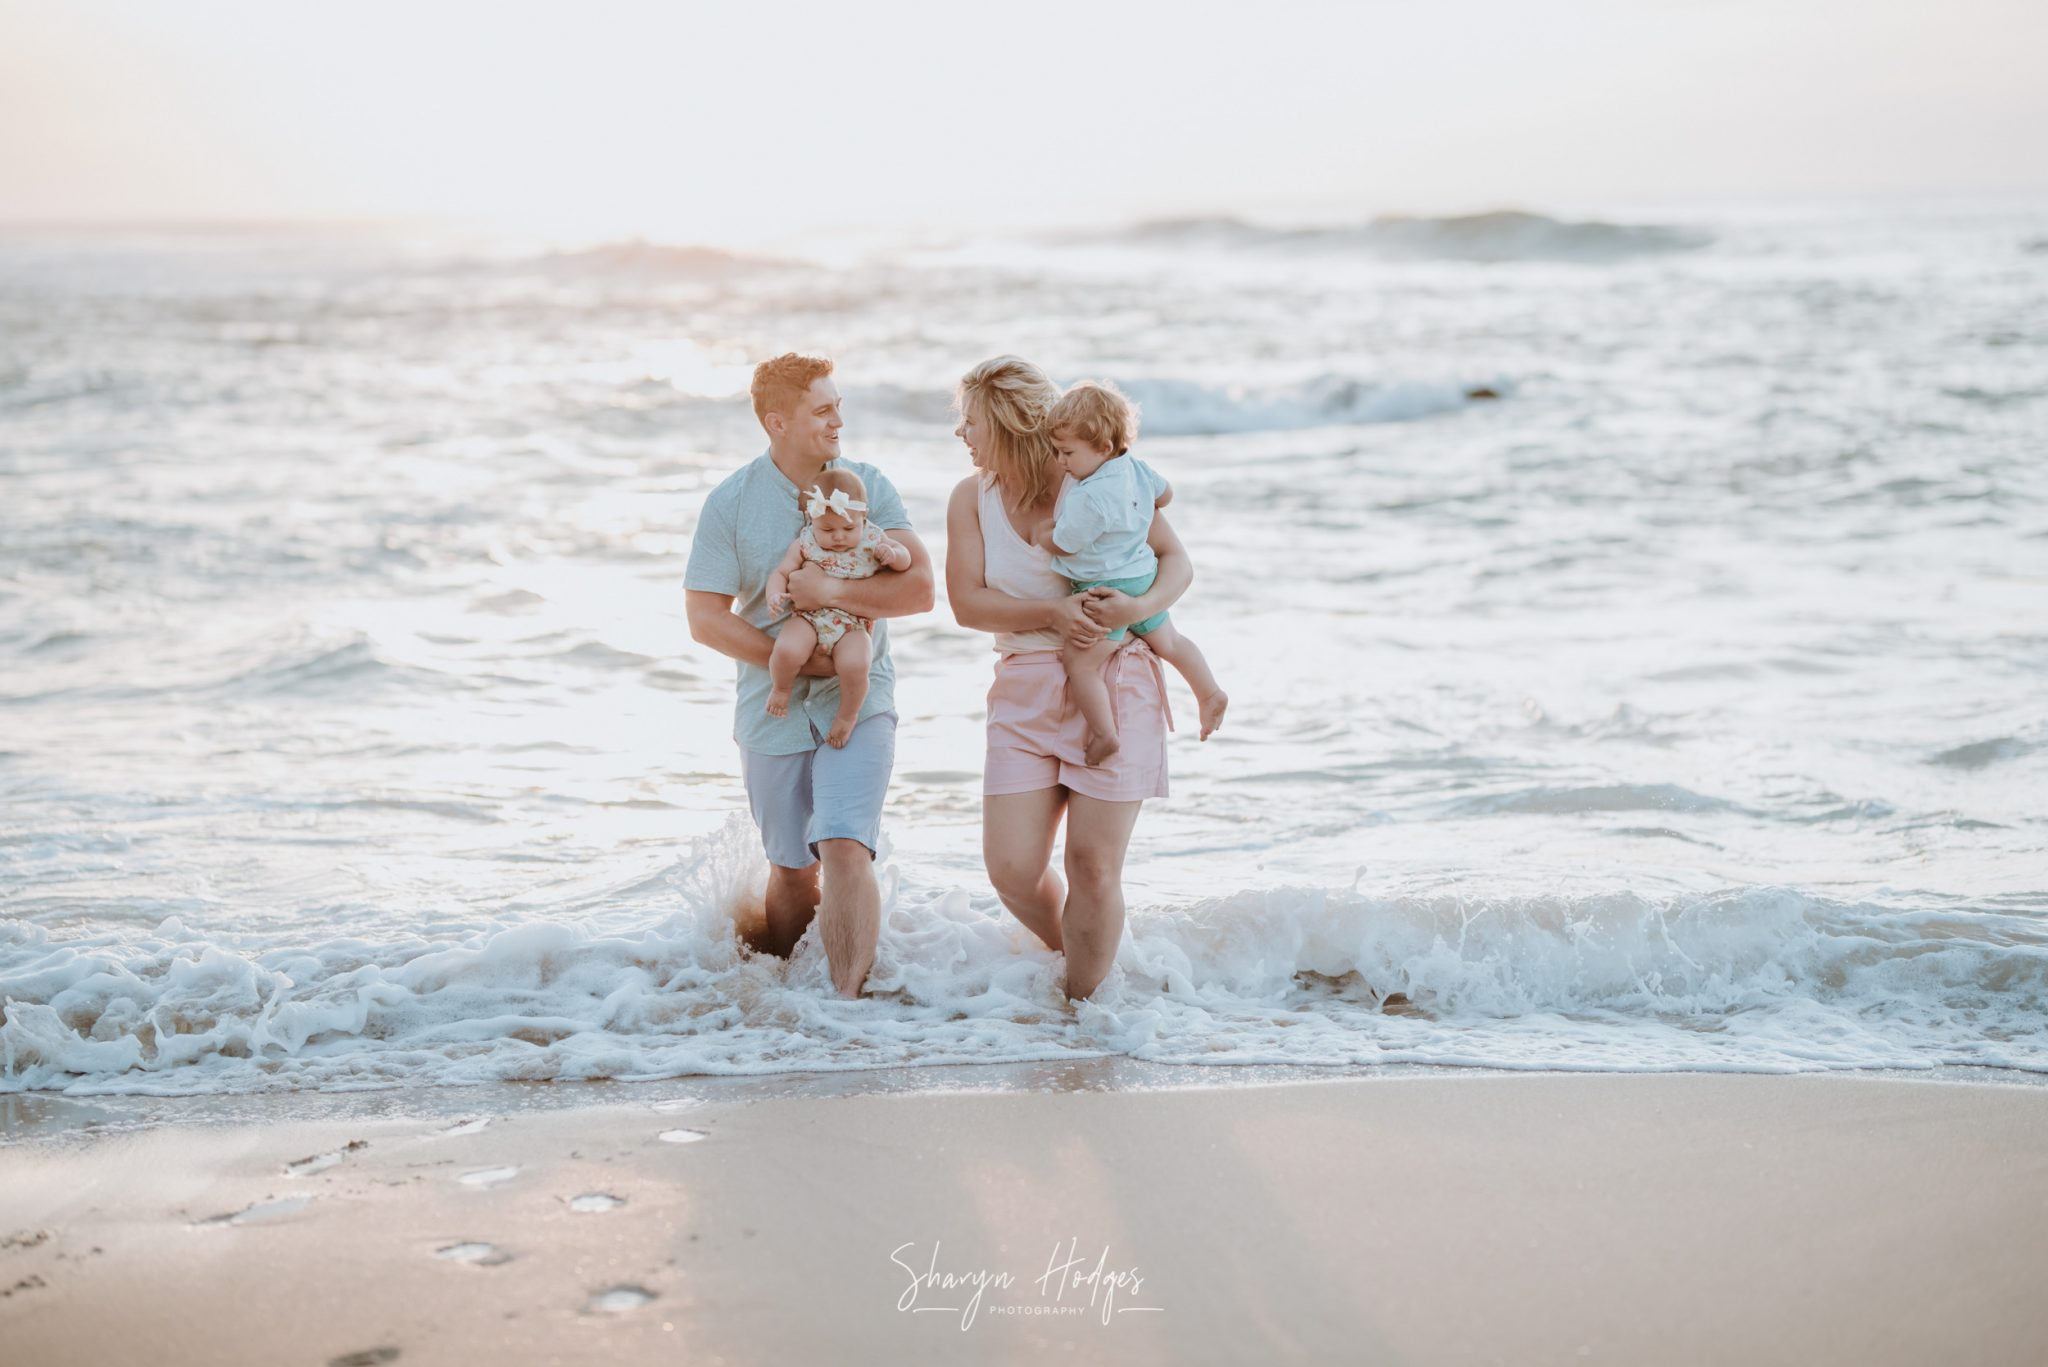 Plettenberg bay family photographer, best photographer, garden route, Plett, beach shoots, sunrise, Keurboomstrand, family shoots, Knysna